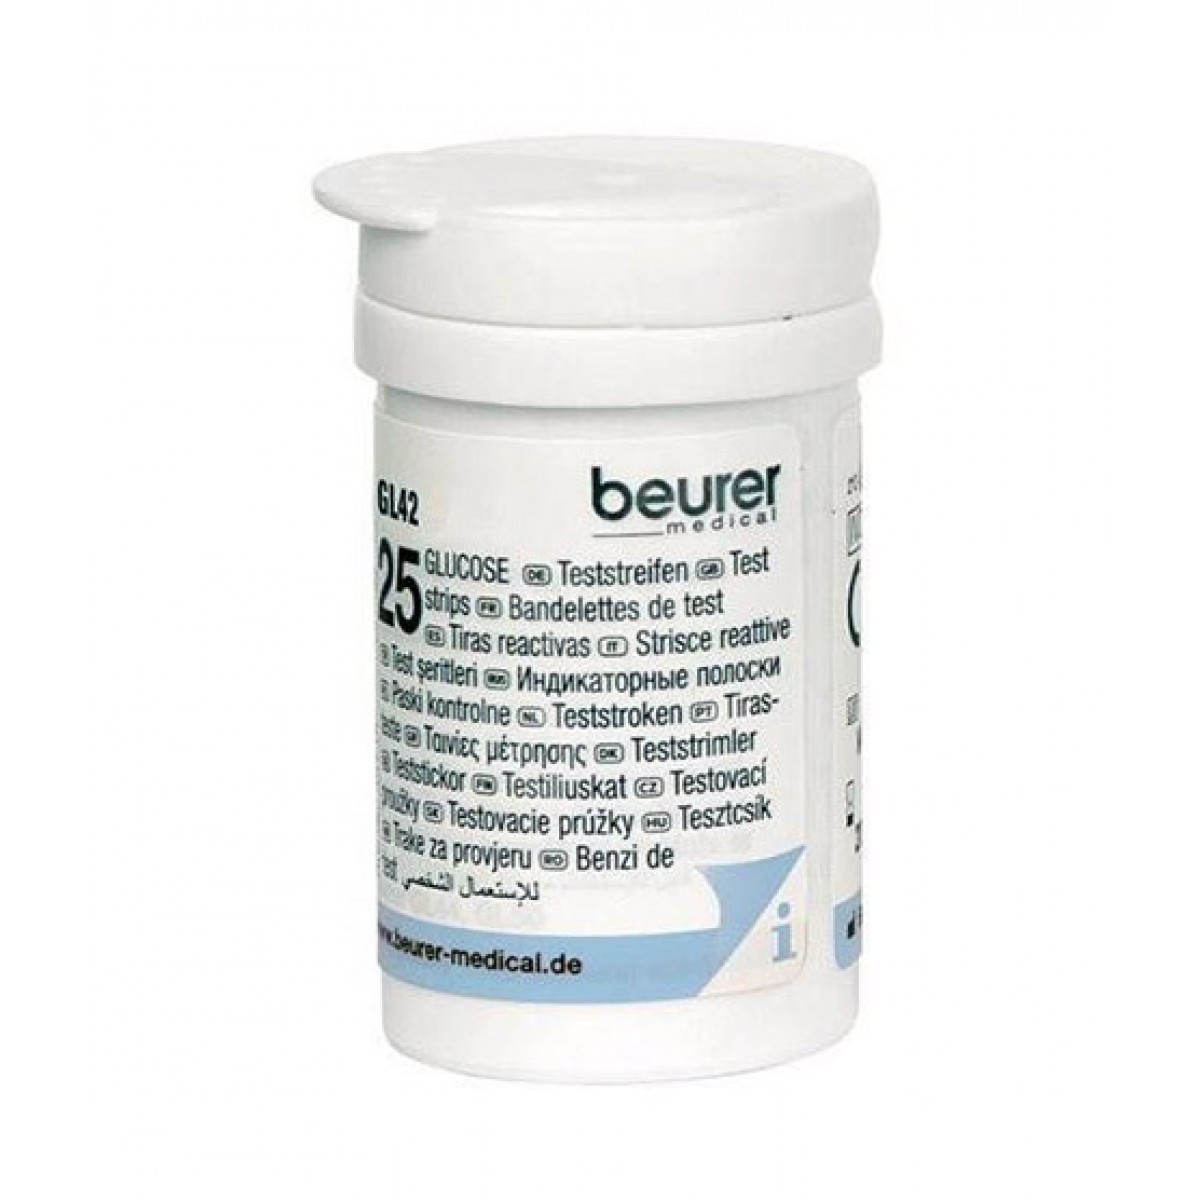 Beurer GL 42 43 Blood Glucose Test Strips   hotpoint.co.ke e44d1c27ee9